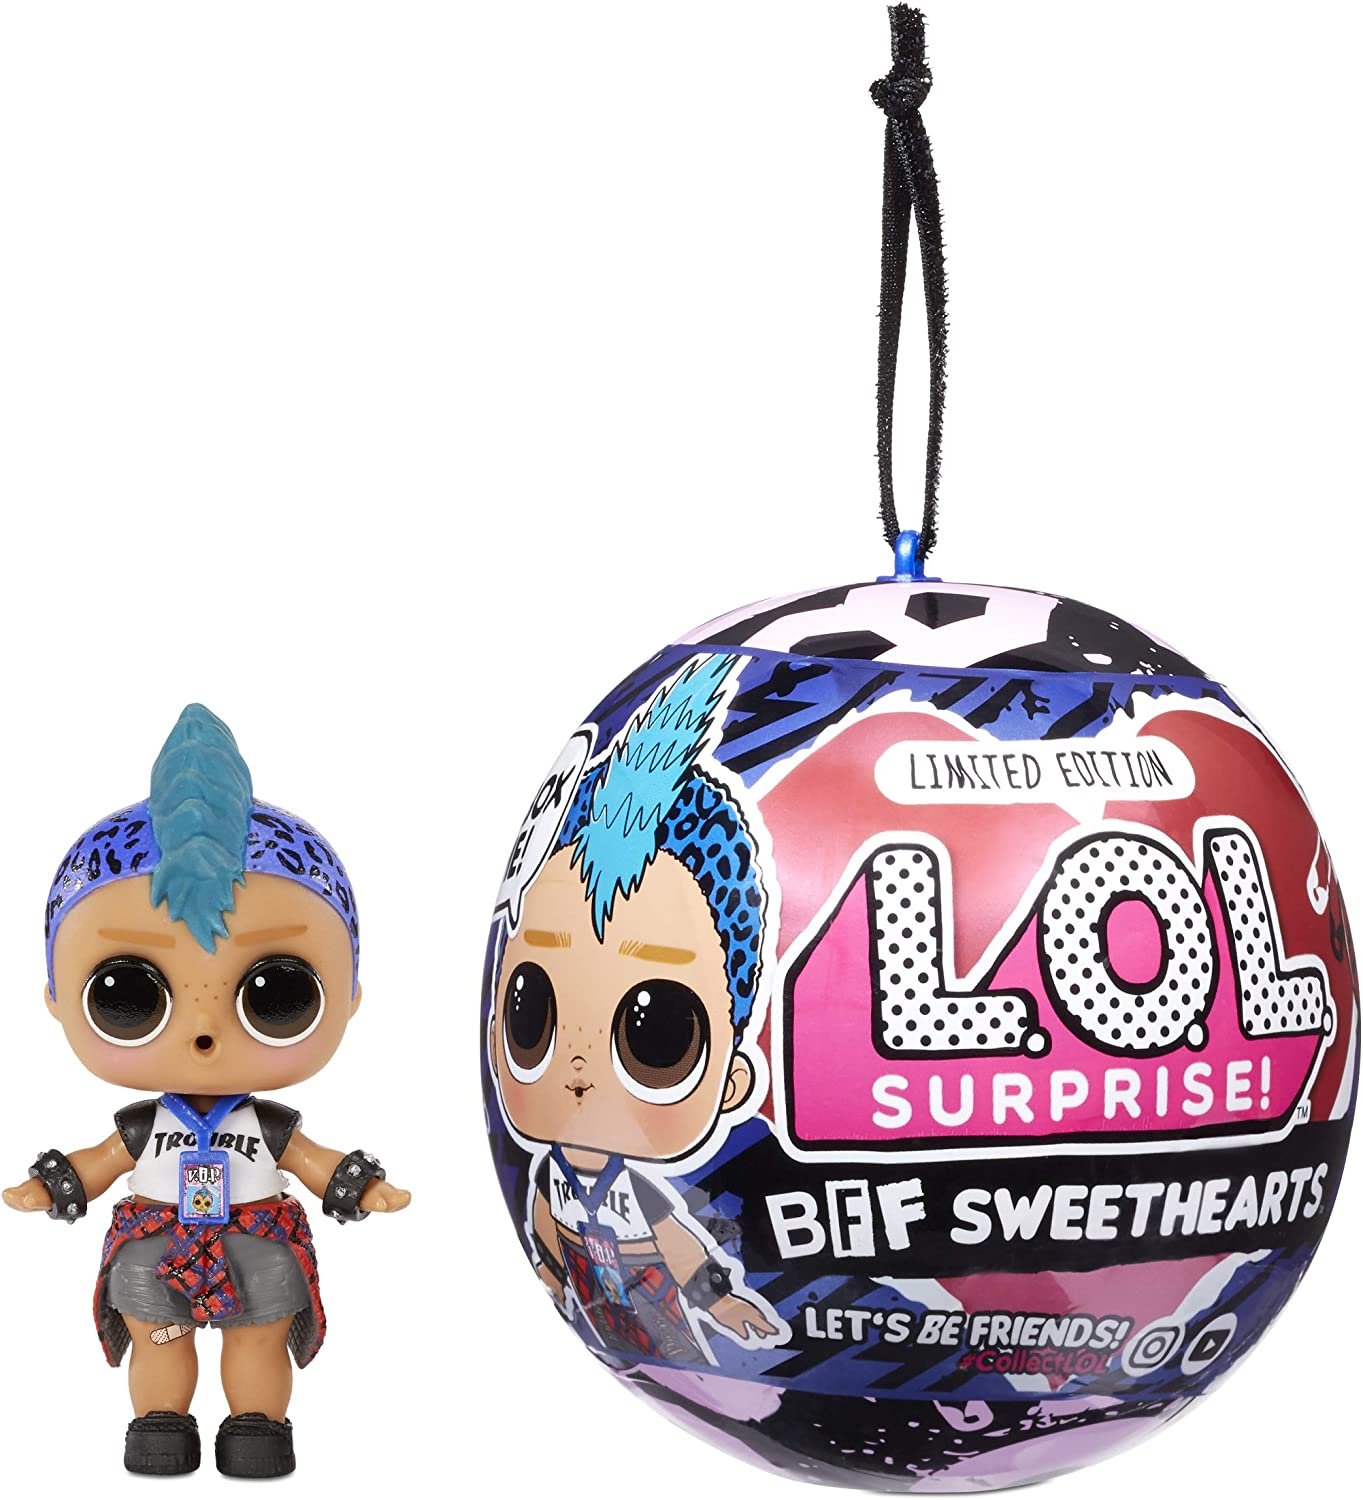 LOL Surprise BFF Sweethearts Punk Boi Doll with 7 Surprises, Surprise Doll, Boy Doll, Valentine's Doll, Accessories